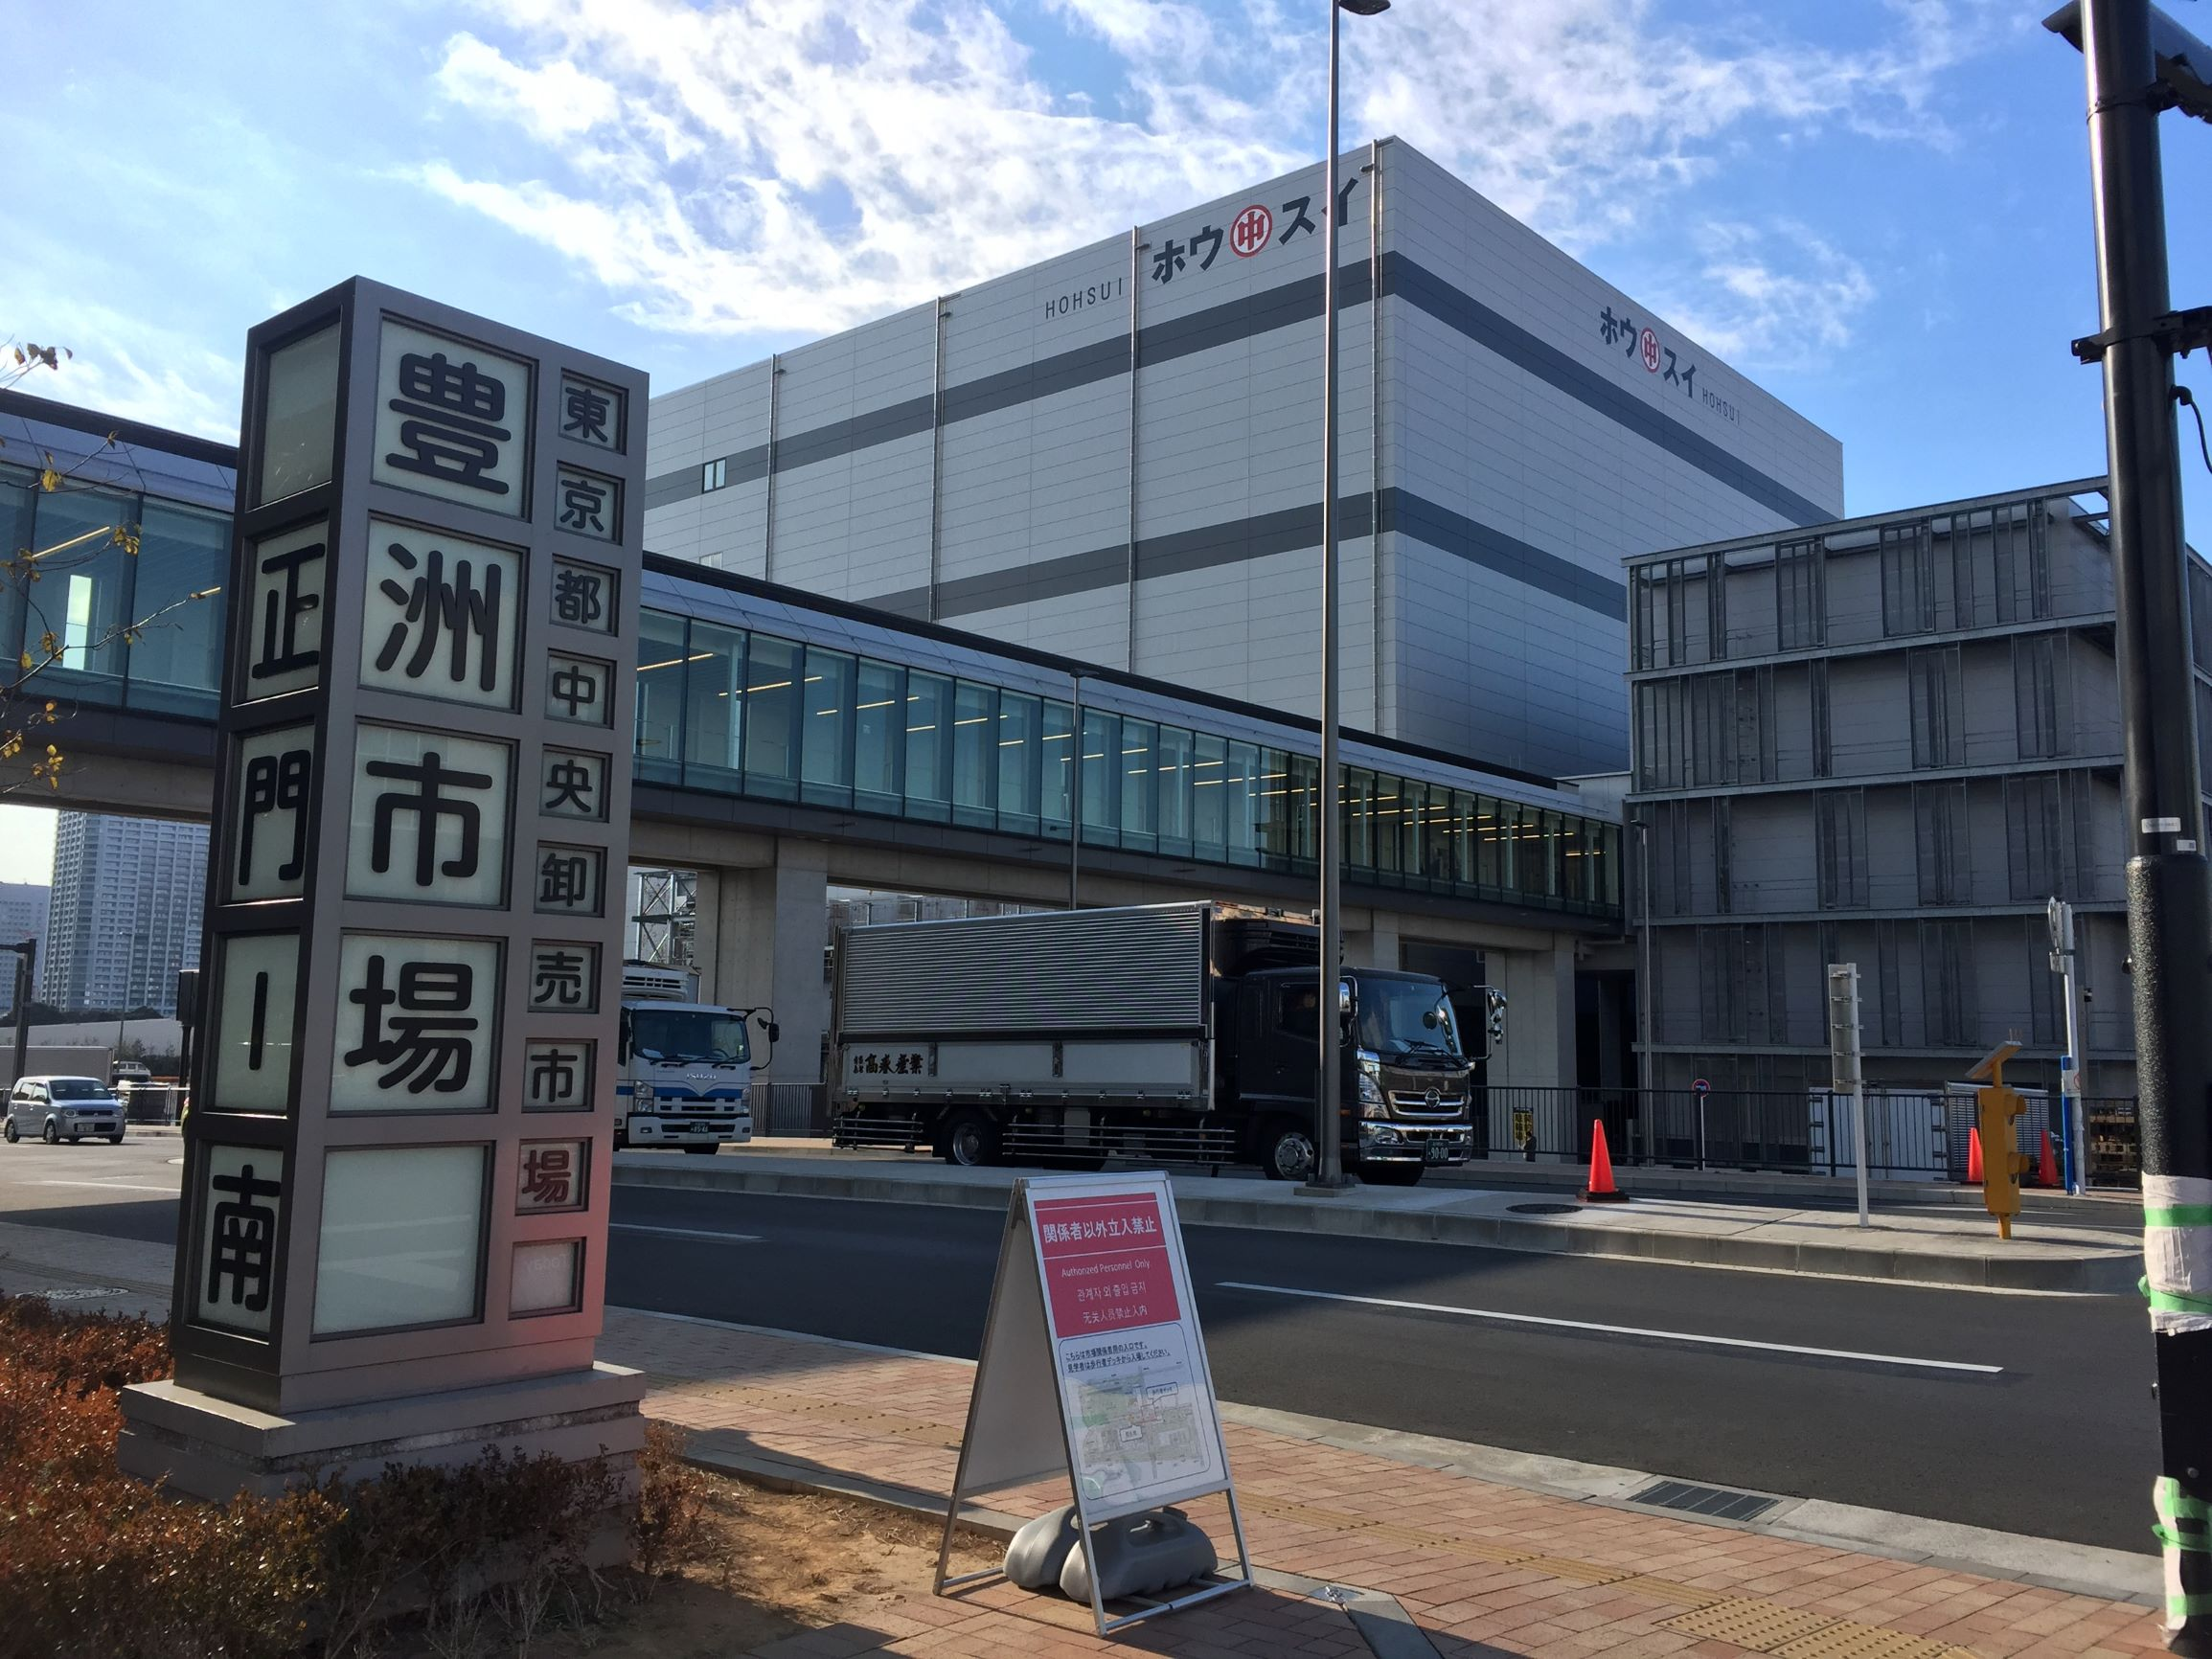 [Koto Who's who in Koto-ku] Toyosu Market which is popular for guide course of meeting's chairperson Kazue Iwabuchi standard of Koto City culture tour guide.